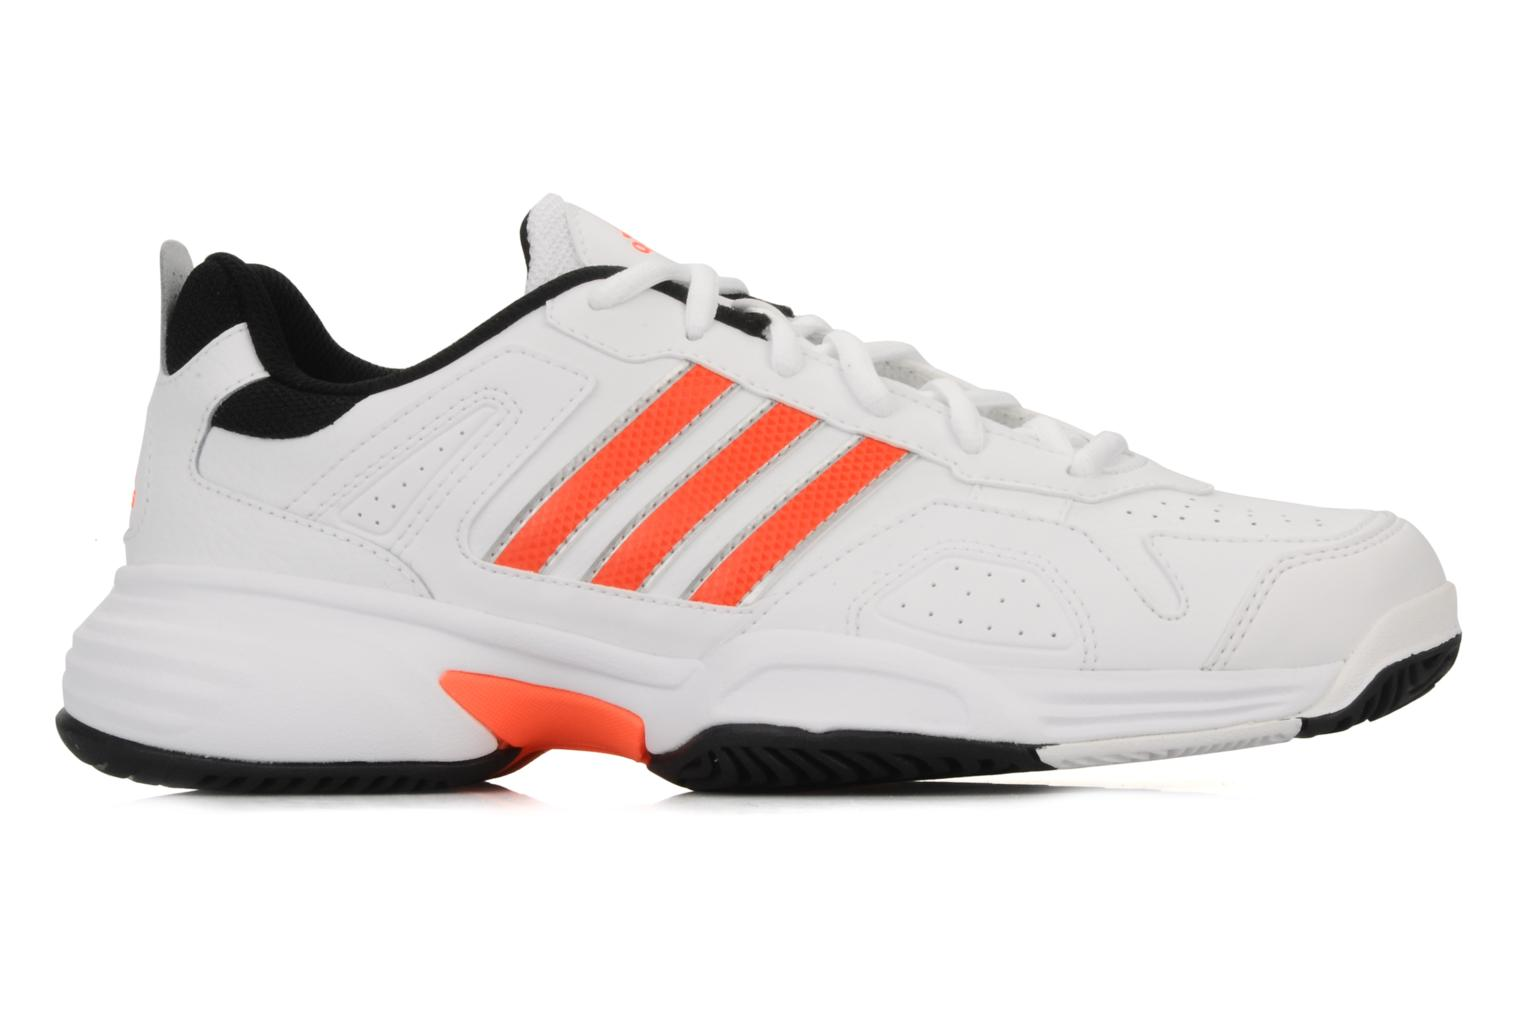 Ambition str vi m Running white ftw infrared black 1